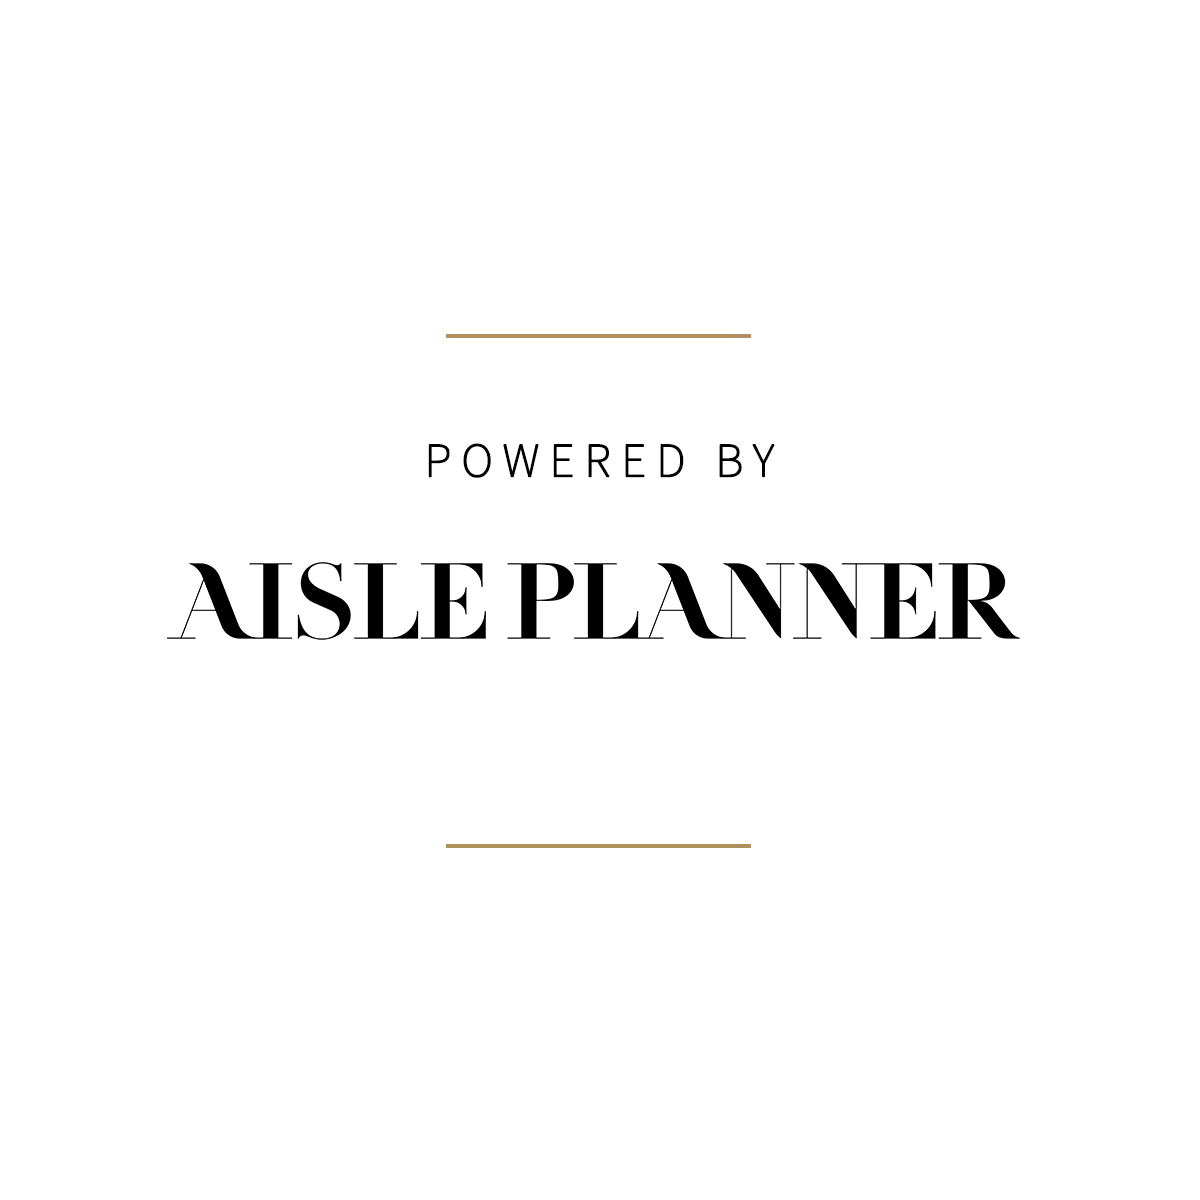 powered-by-aisle-planner-white.png